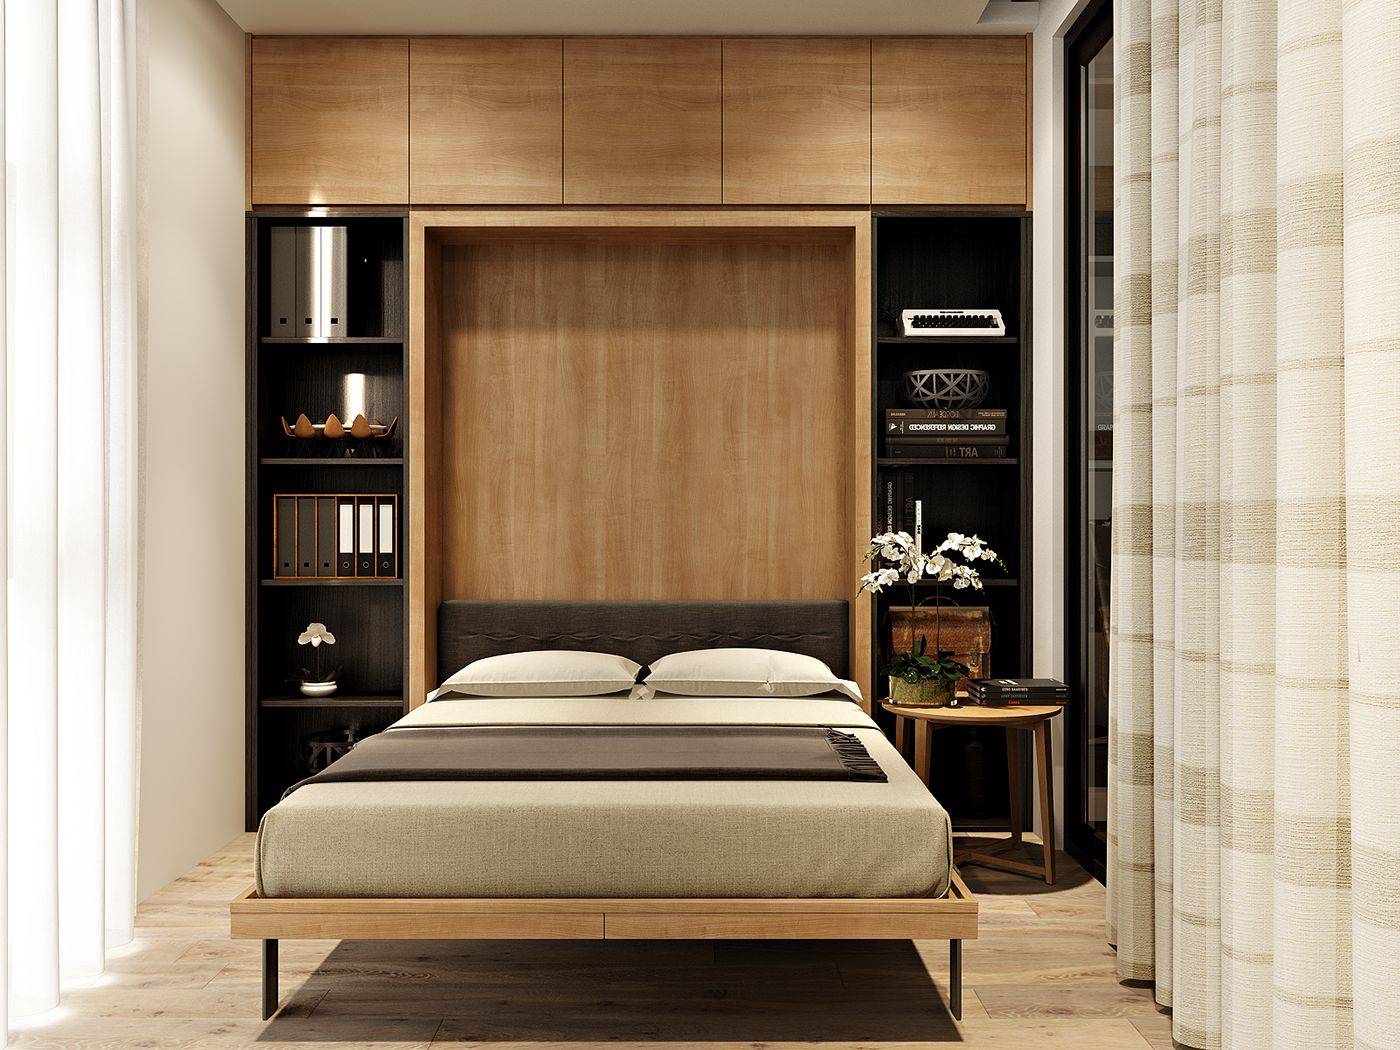 Bedroom Design Ideas Small Space Sophisticated Small Bedroom Designs